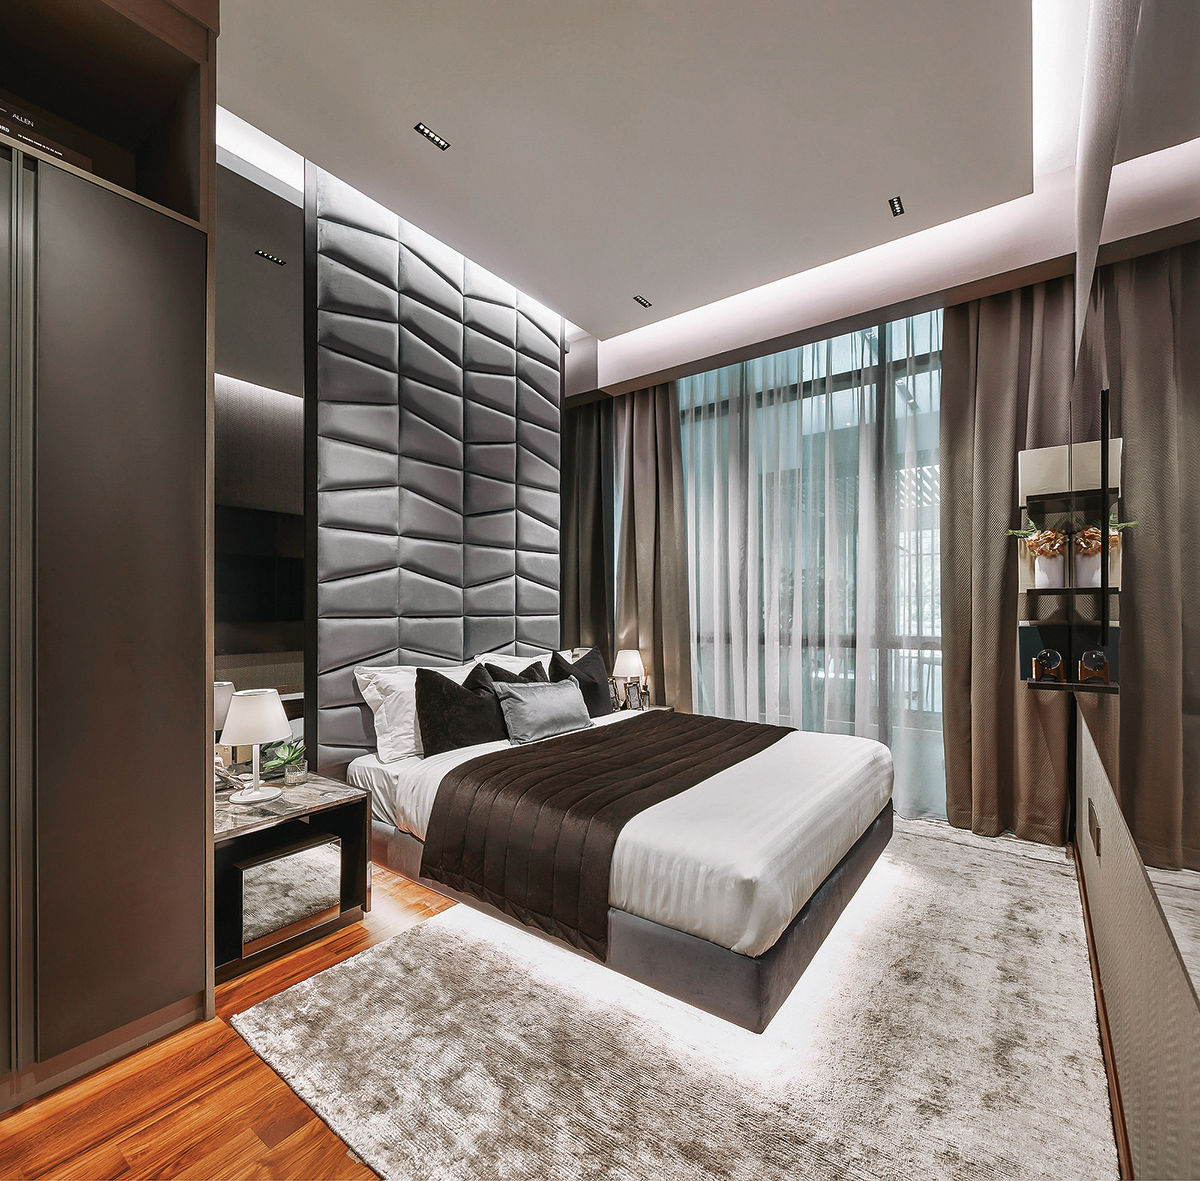 The condo comprises one-to three-bedroom units and five duplex penthouse units